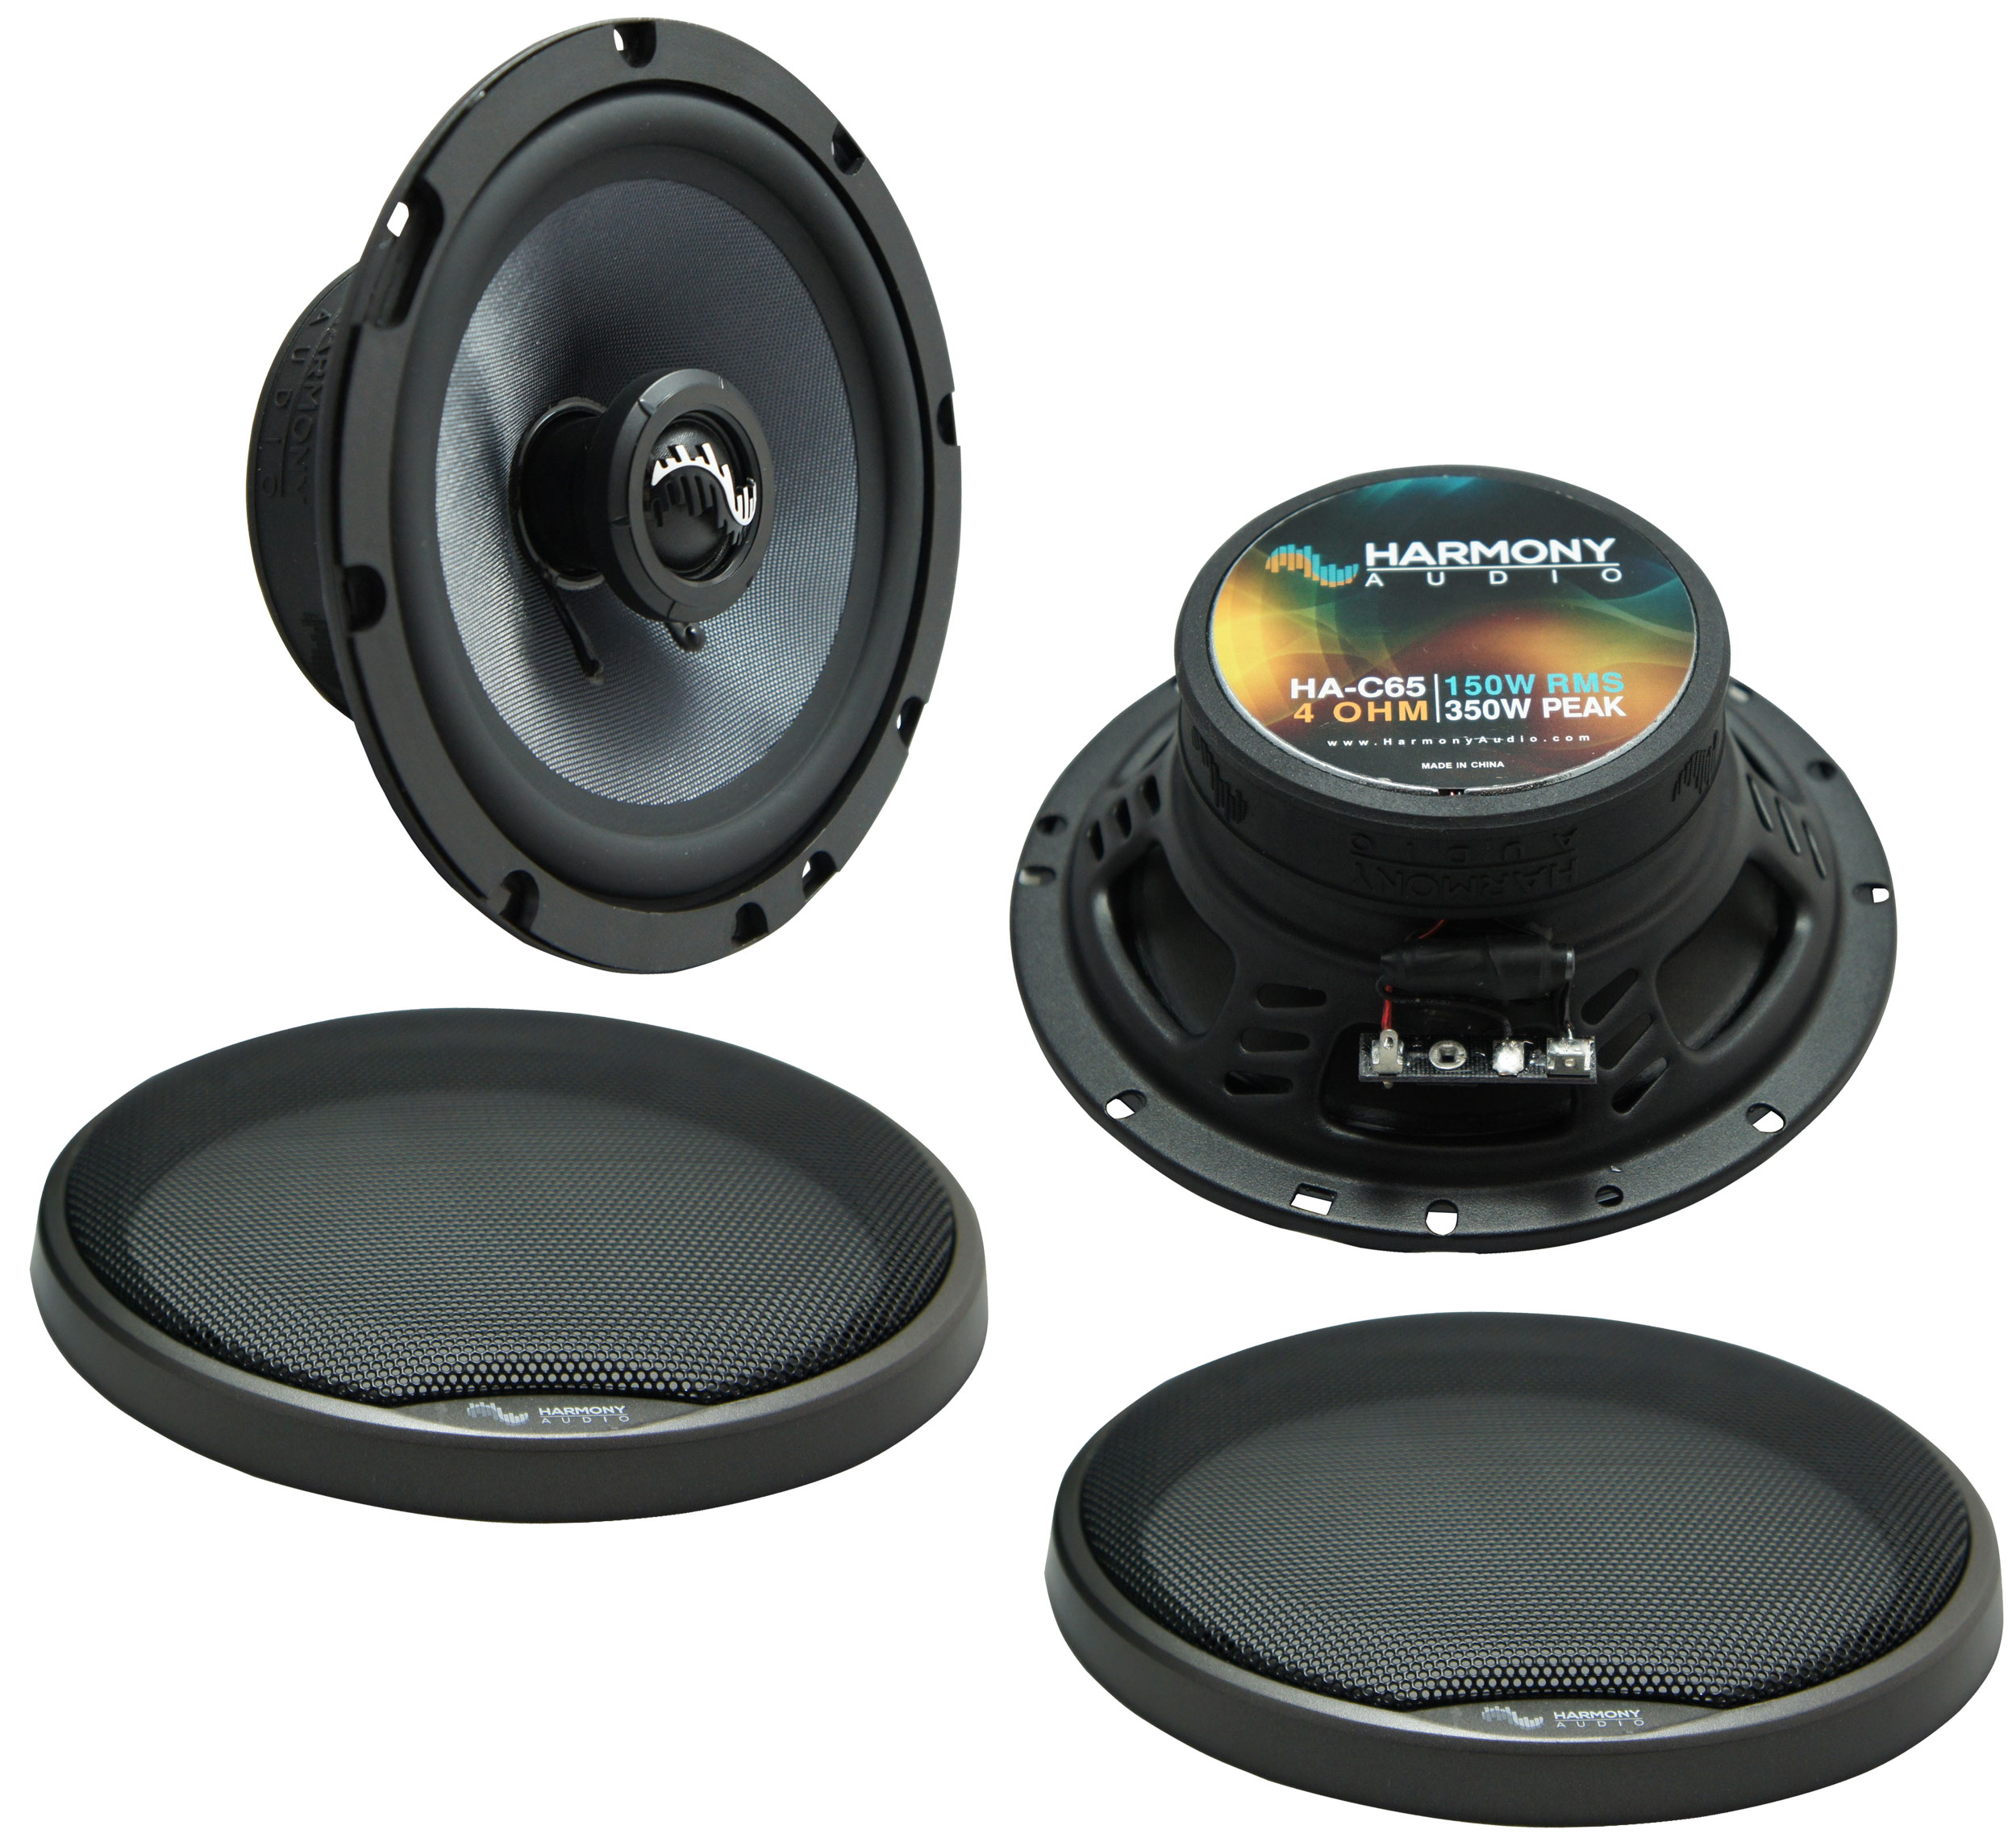 Fits Cadillac DeVille 2000-2005 Front Door Replacement Harmony HA-C65 Premium Speakers